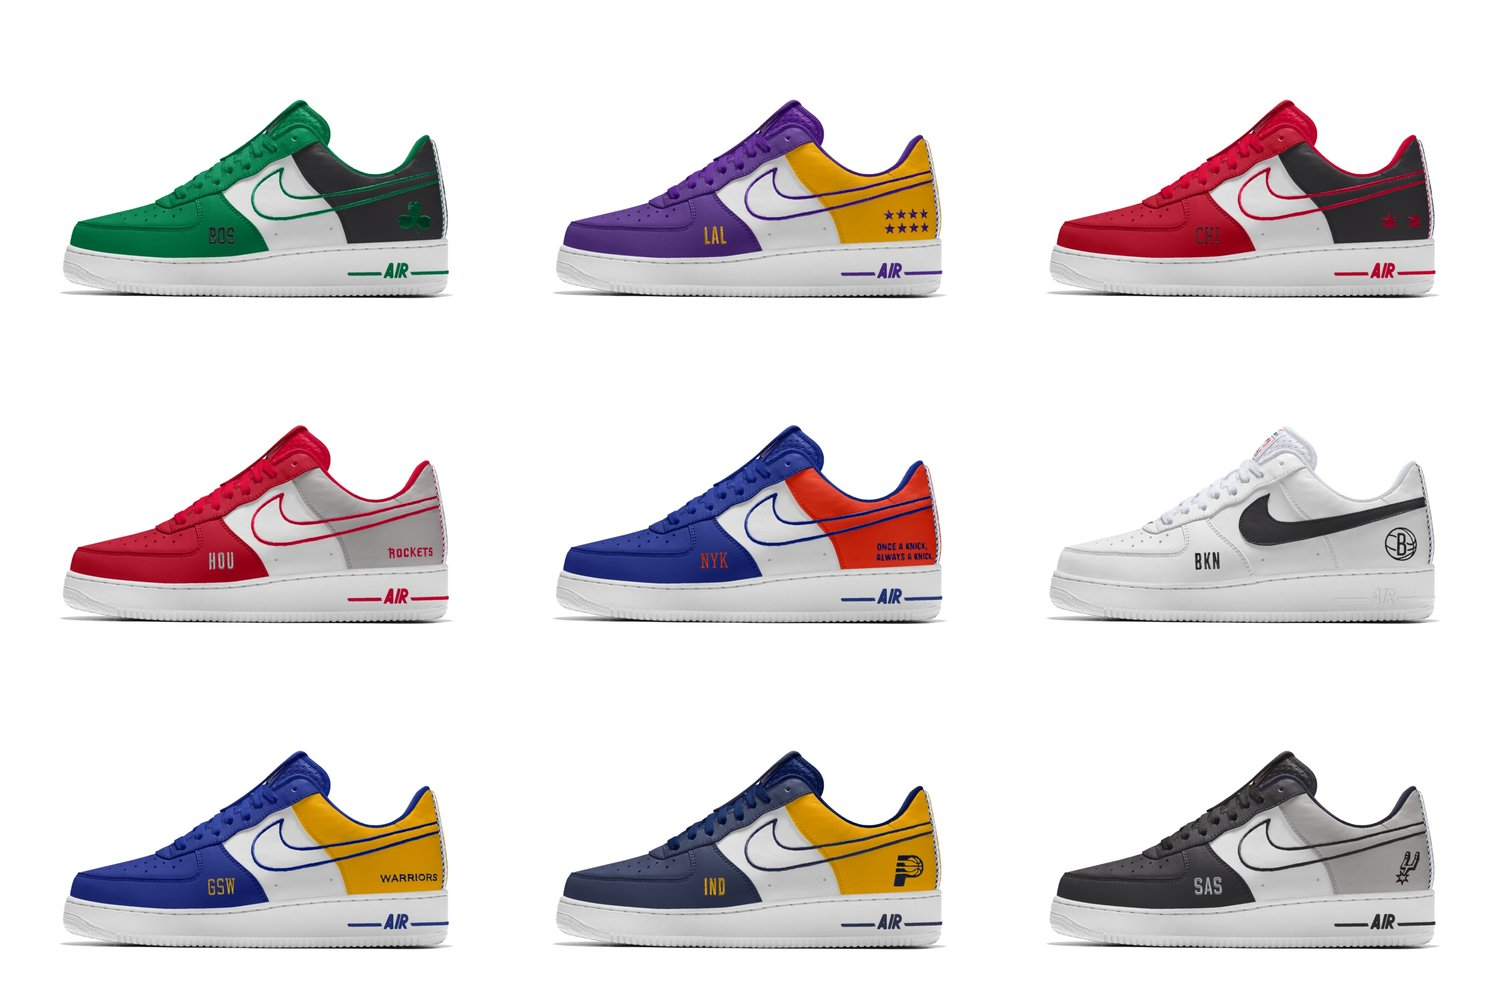 0ddb9329eeb Now Available  NBA x NikeID Air Force 1 — Sneaker Shouts